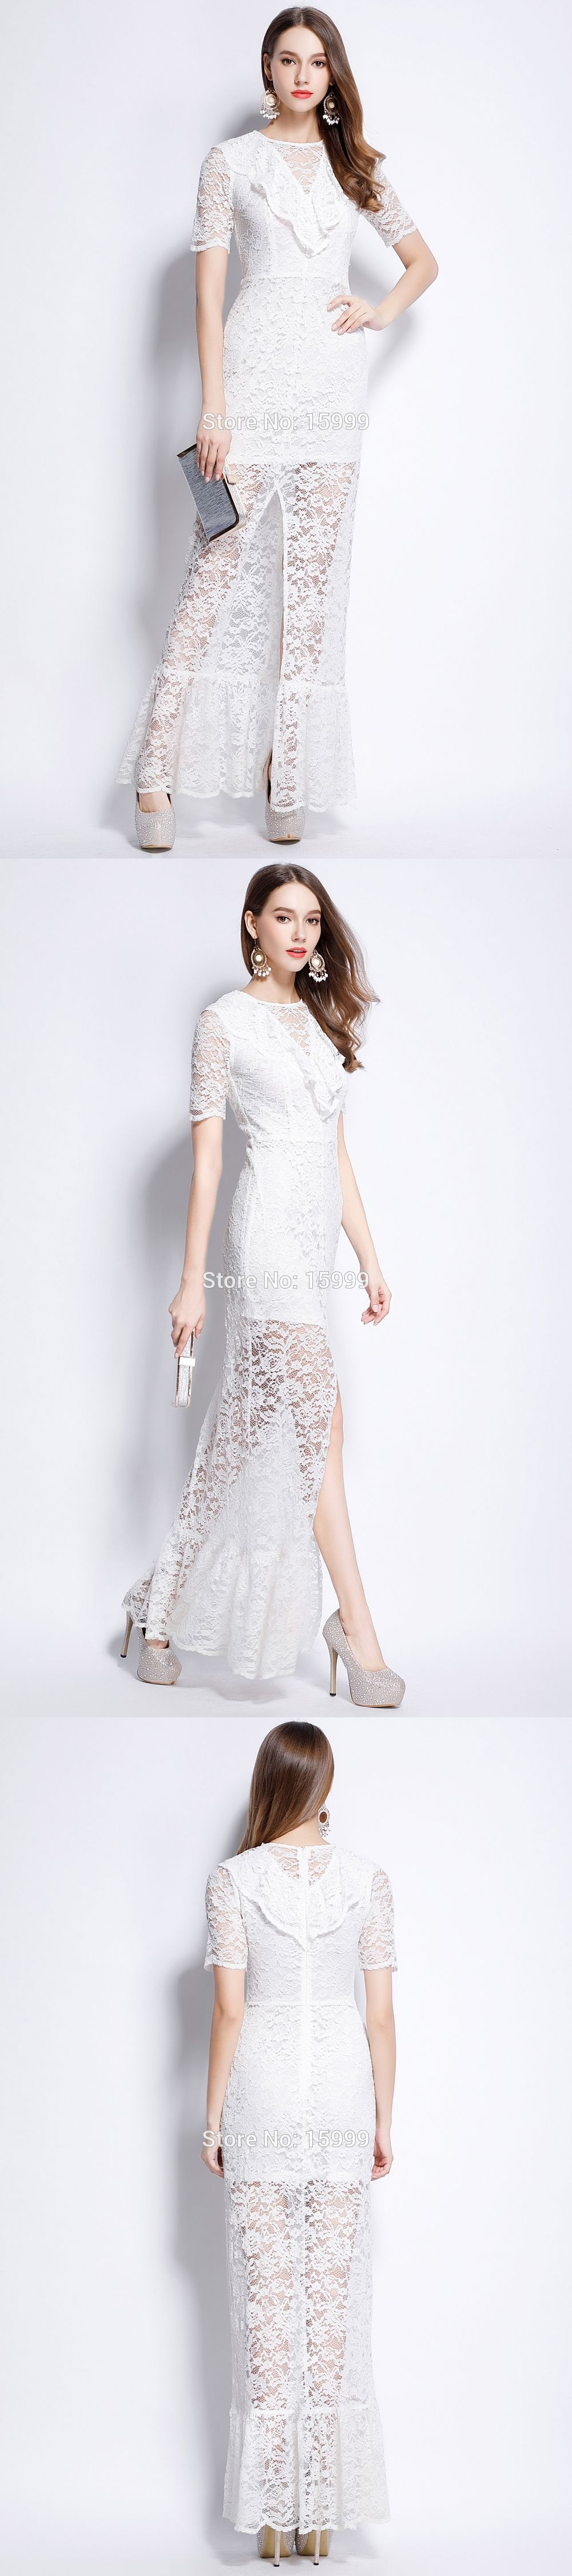 White lace wedding dress with short sleeves  New white lace high slit short sleeves prom ball women long ruffles